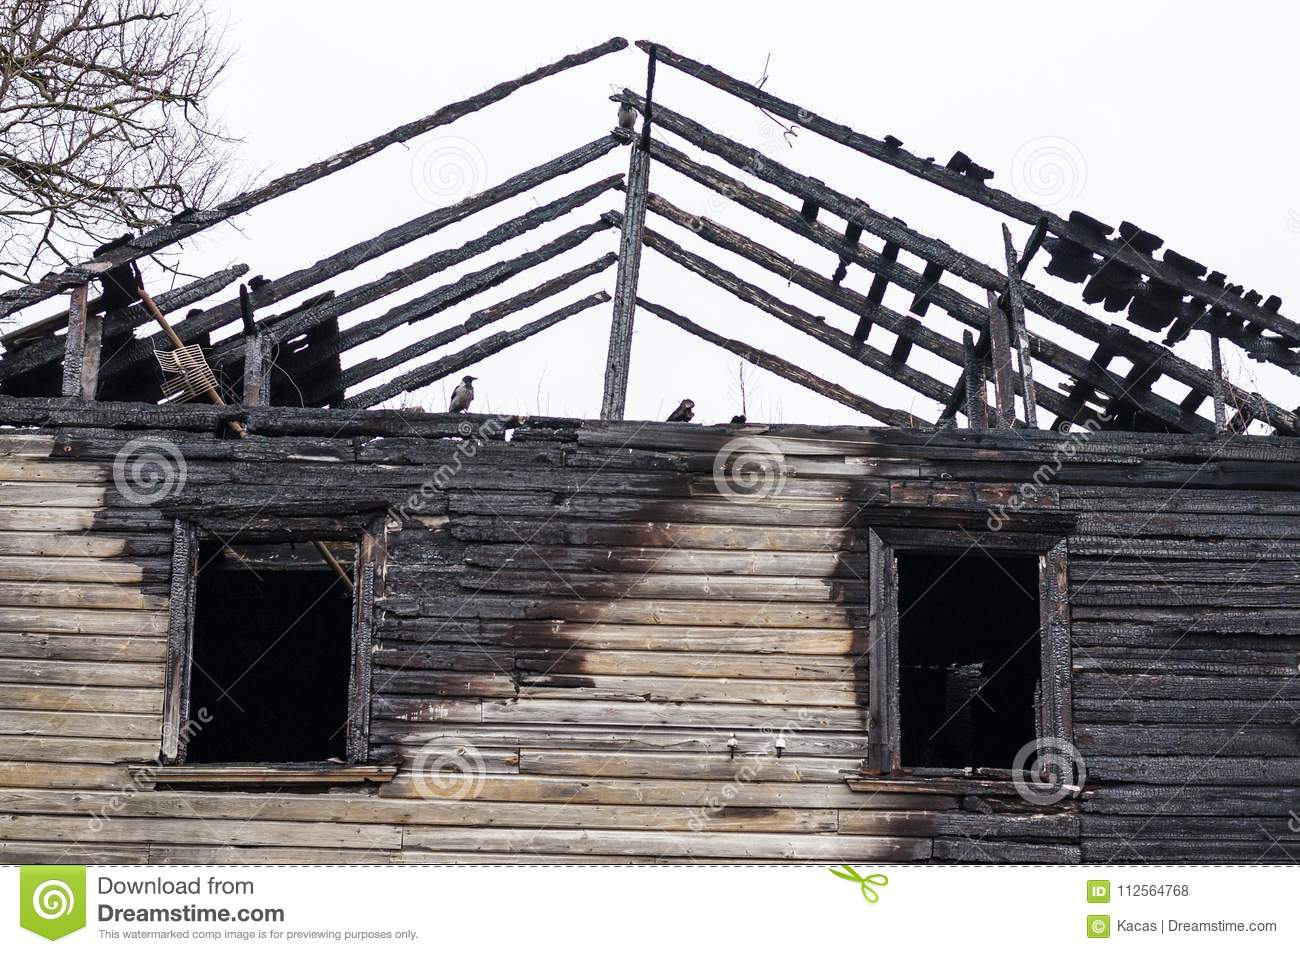 Roof Planks And Windows Remains Of Burnt Wooden House Stock Photo